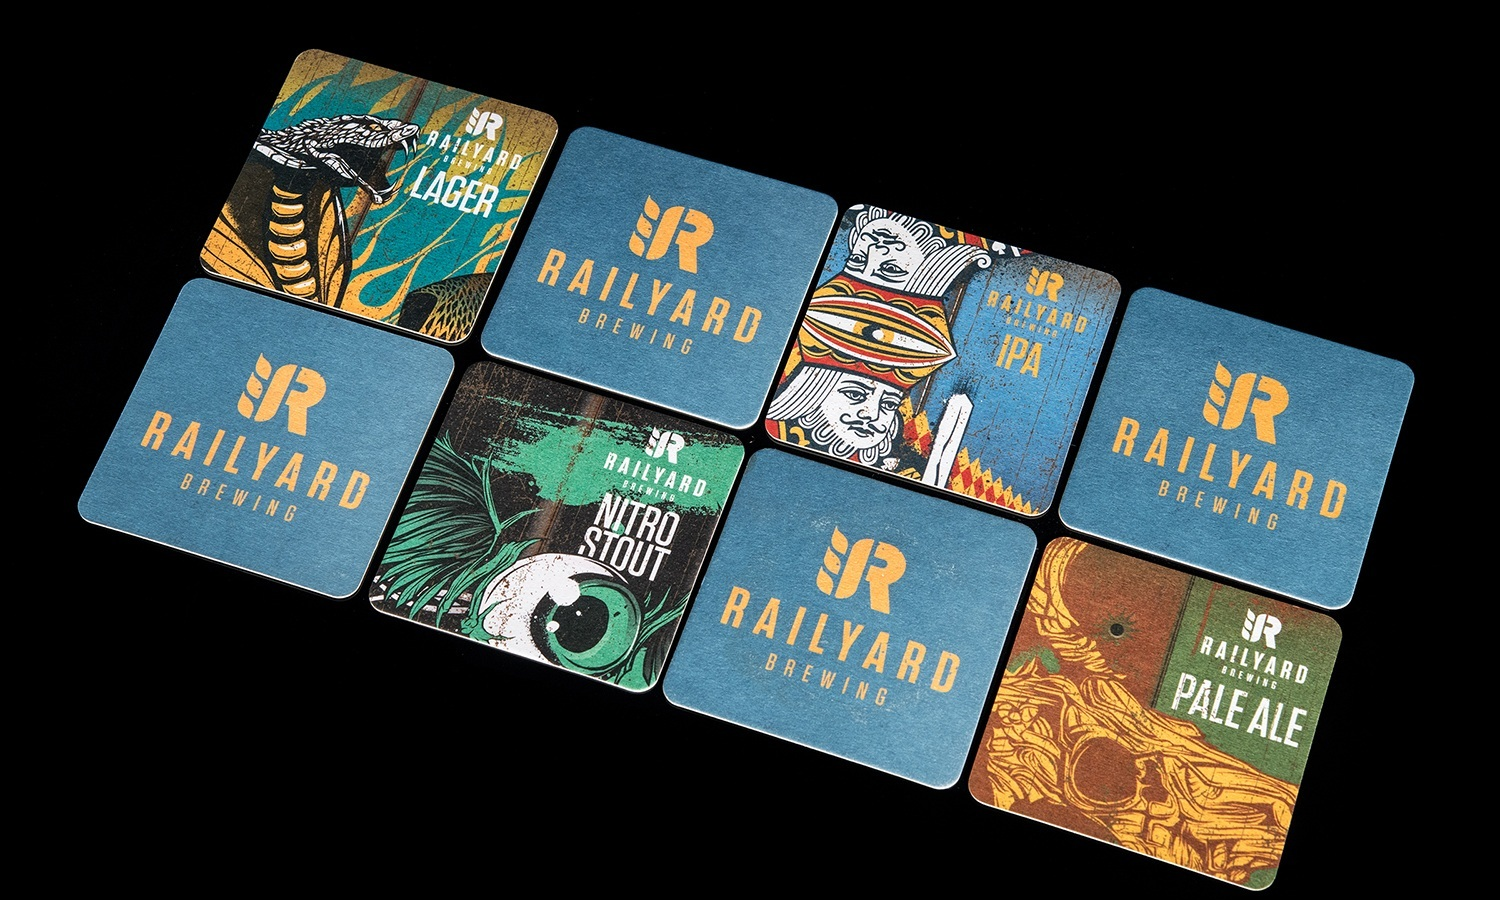 Branding+and+Packaging+Design+for+Railyard+Brewing